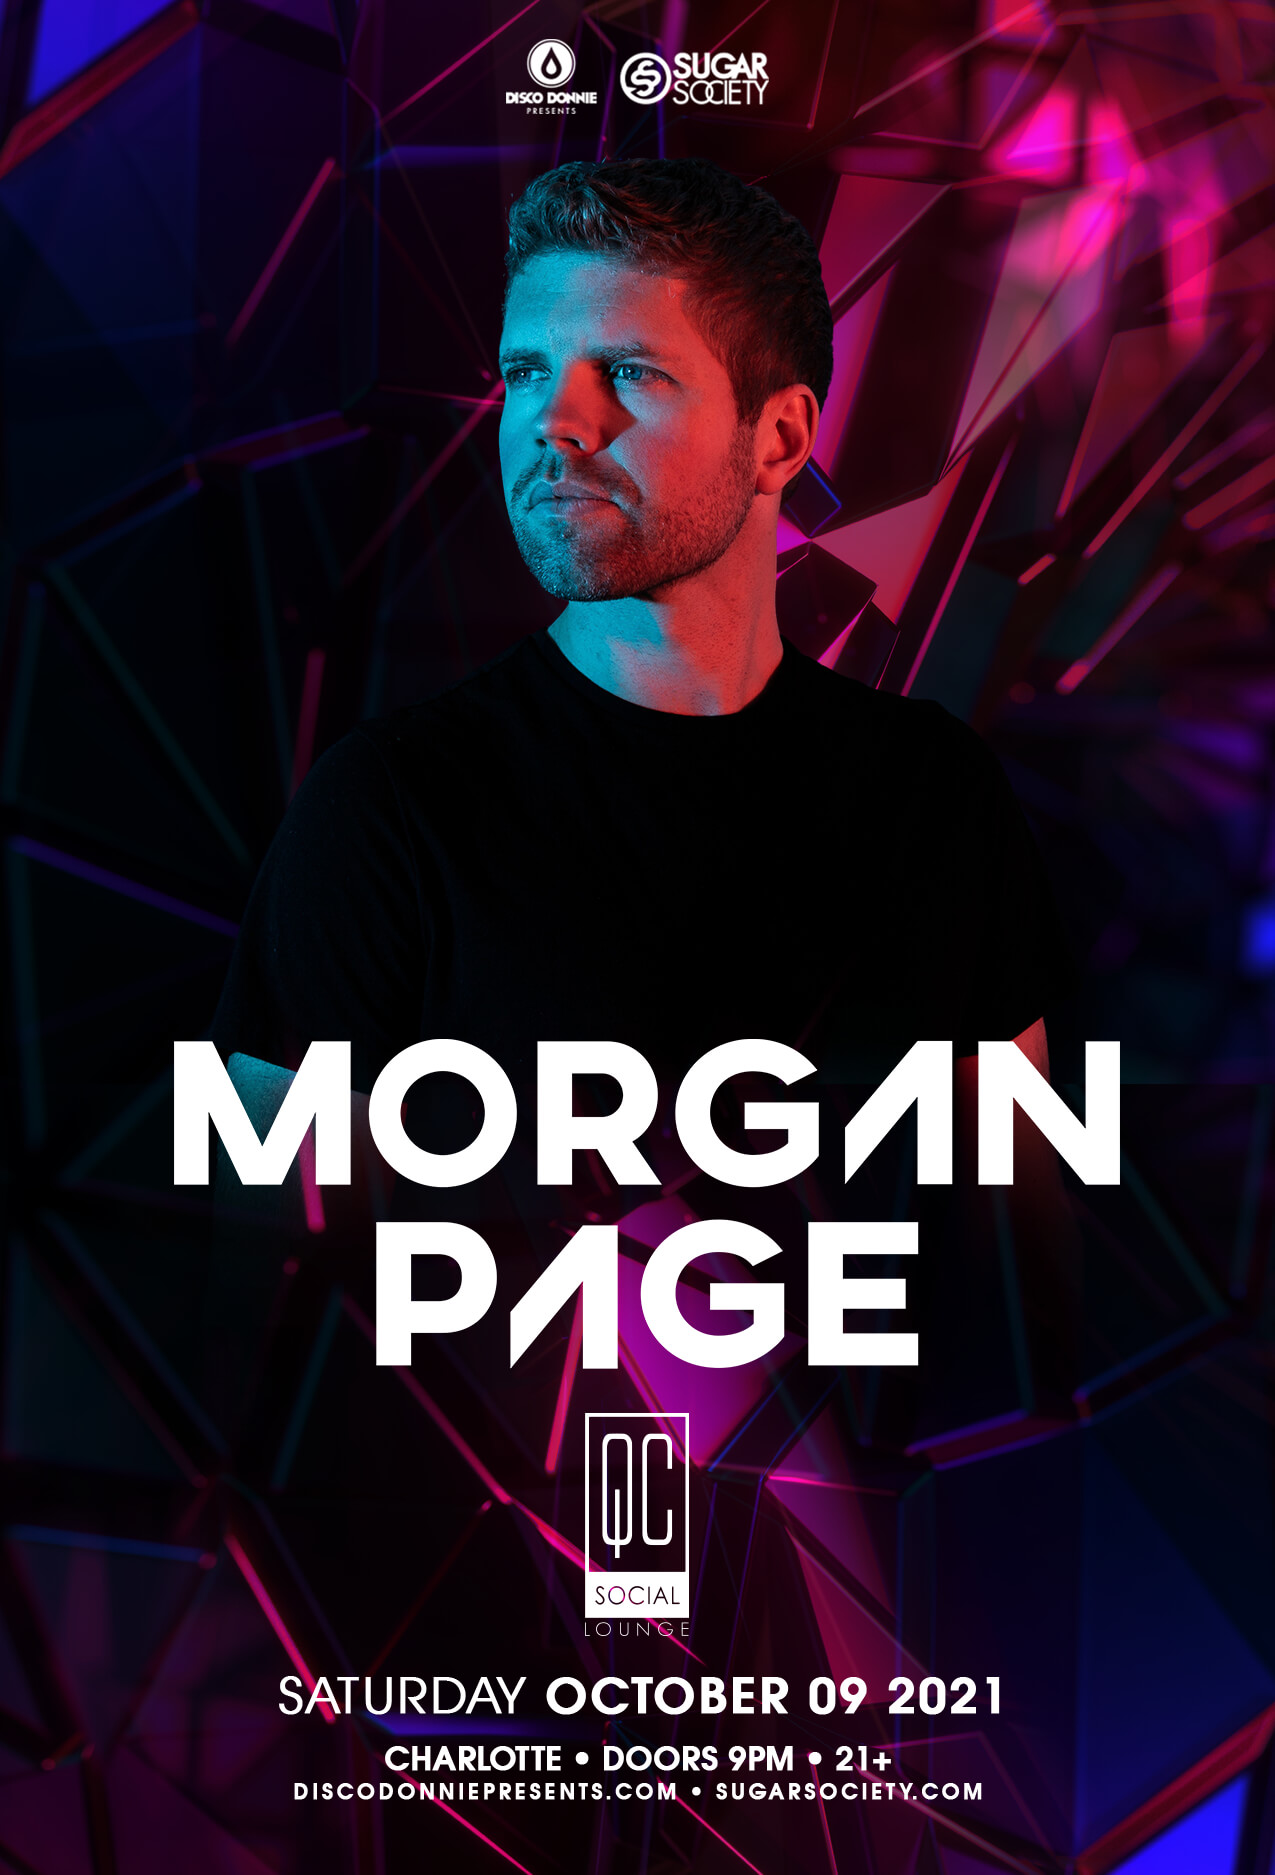 Morgan Page in Charlotte